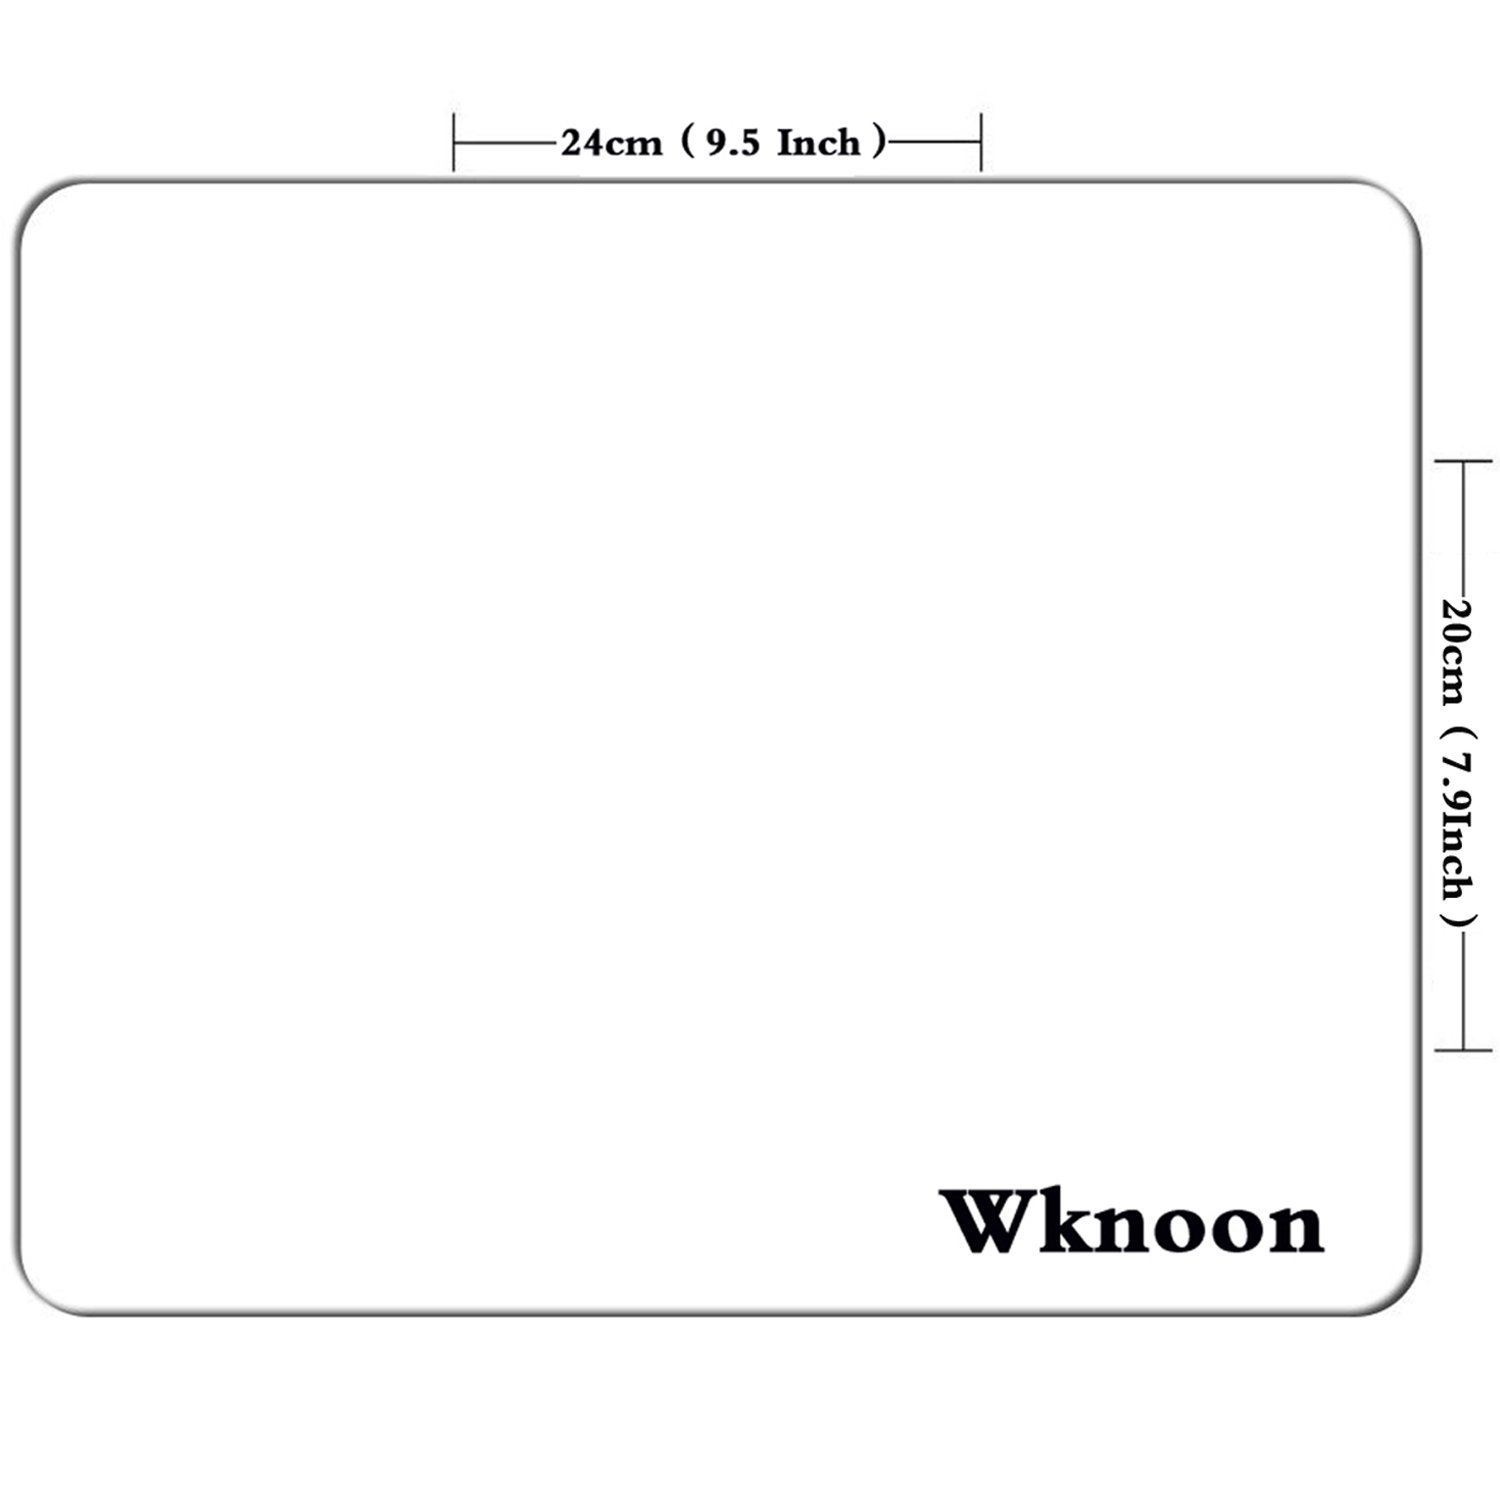 Amazon com : Wknoon Funny Milk Cow Gaming Mouse Pad, Milk Cow